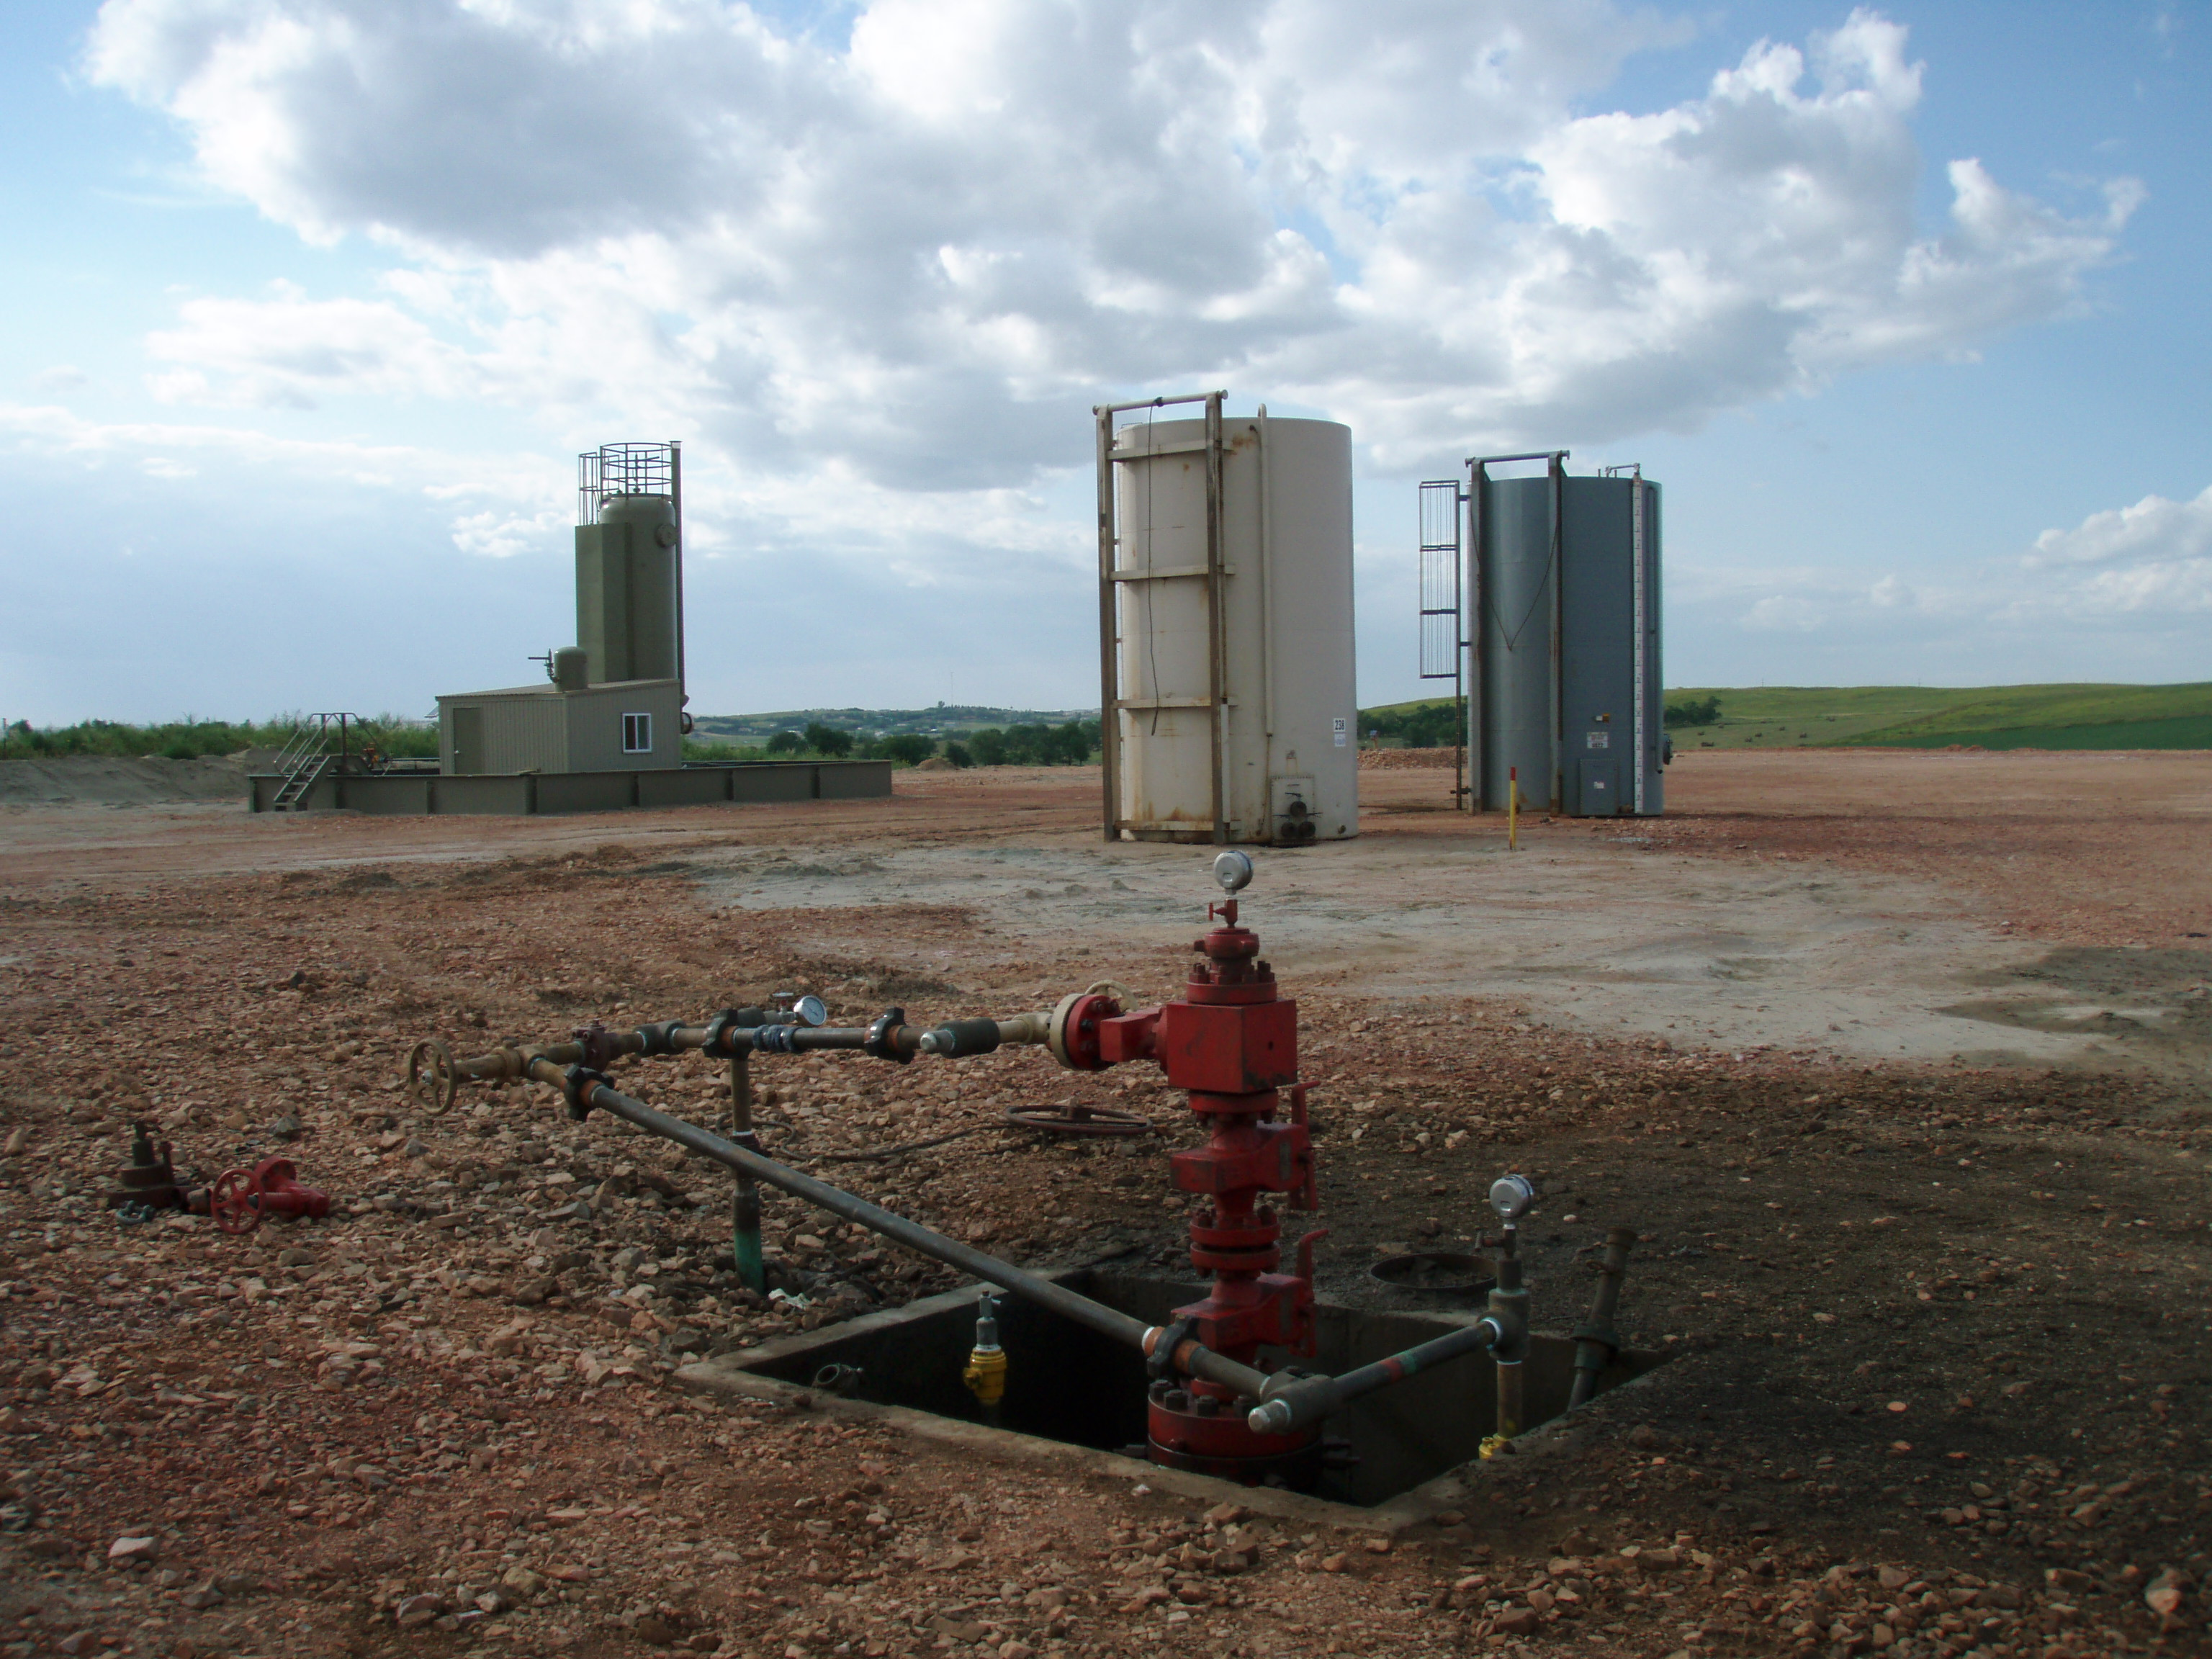 Image: Fracking is responsible for the earthquakes in Oklahoma; they are triggered by the injection of wastewater deep into the ground